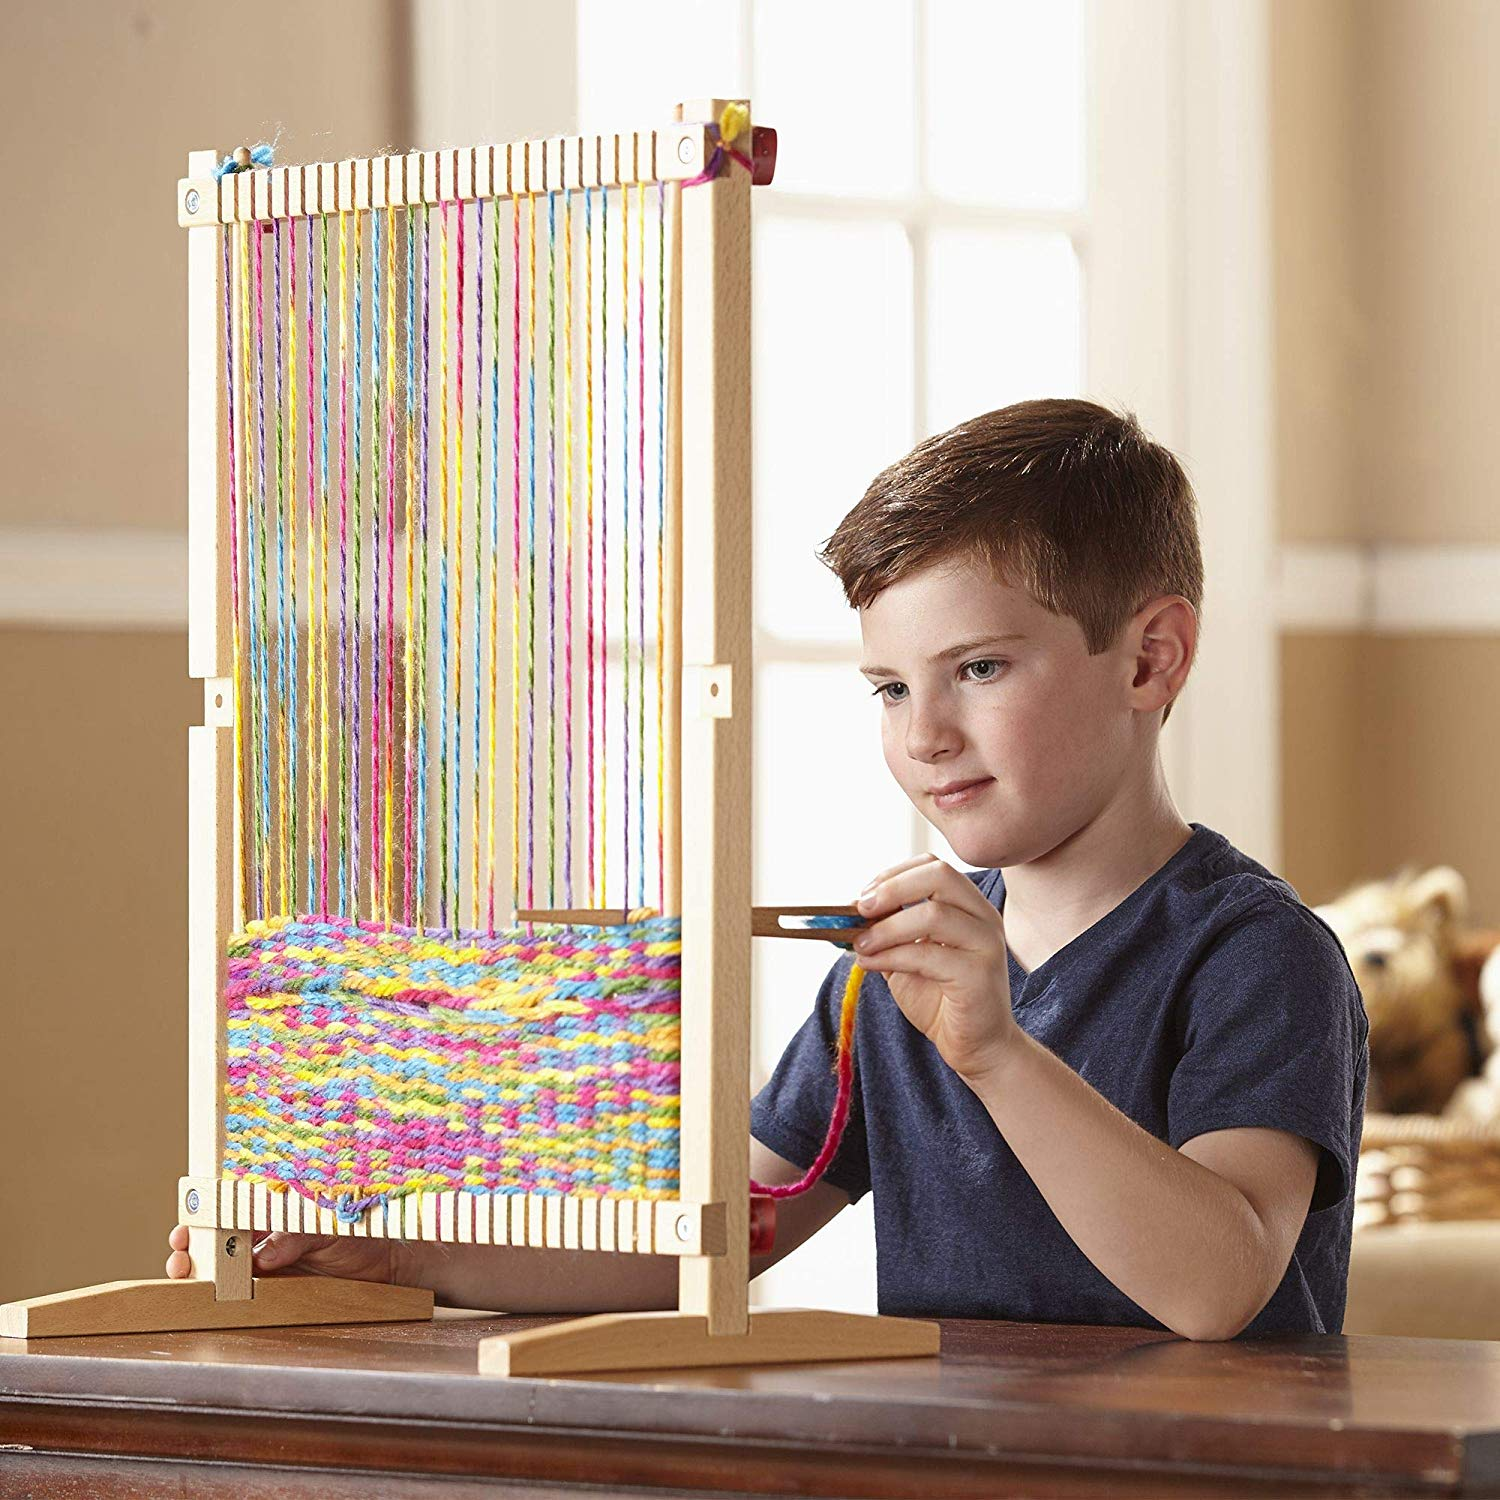 Weaving loom - Teaching kids handicrafts like weaving, knitting or needlework is so beneficial to them in many ways.